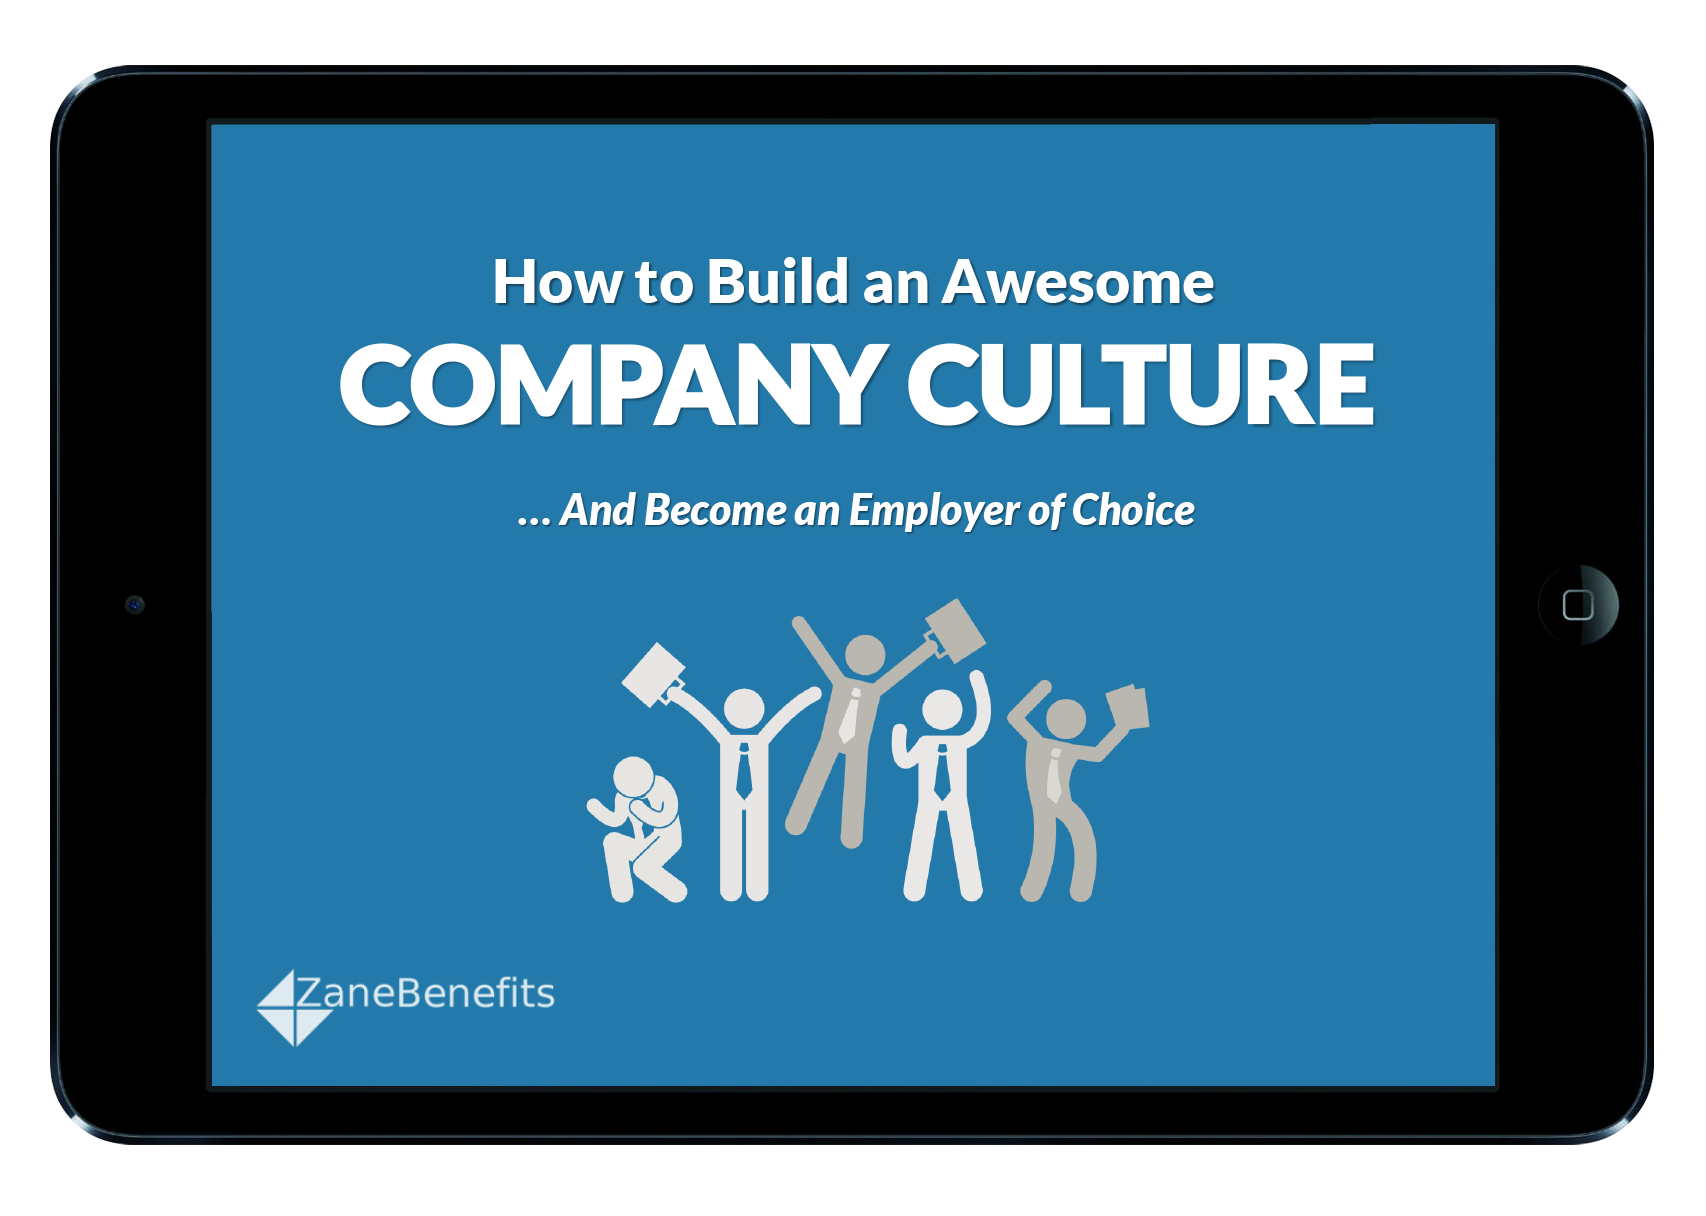 How to Build an Awesome Company Culture